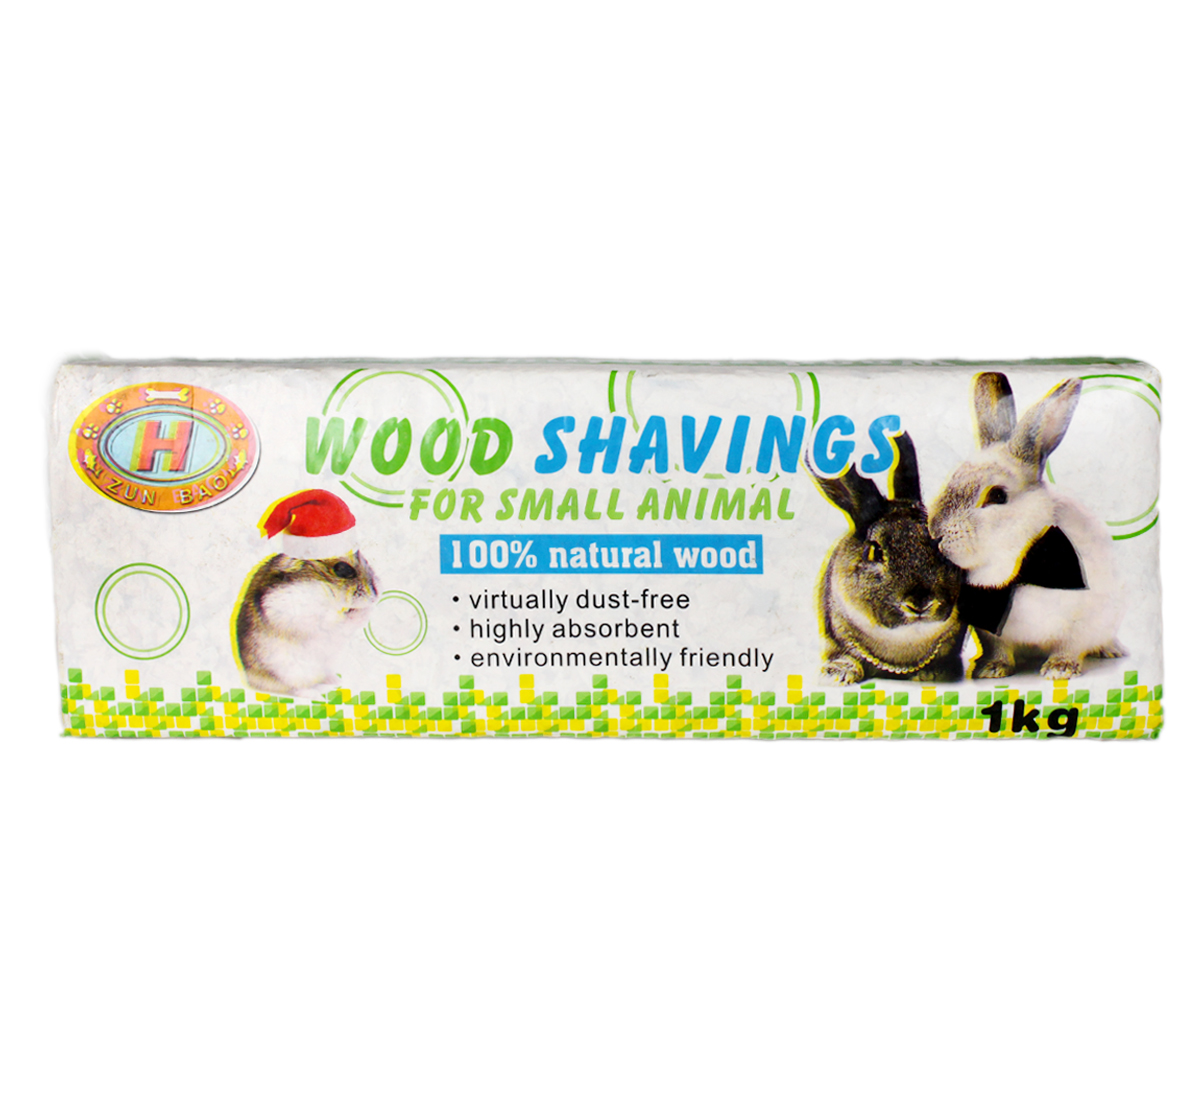 Natural wood shavings woodchips for small animals kg